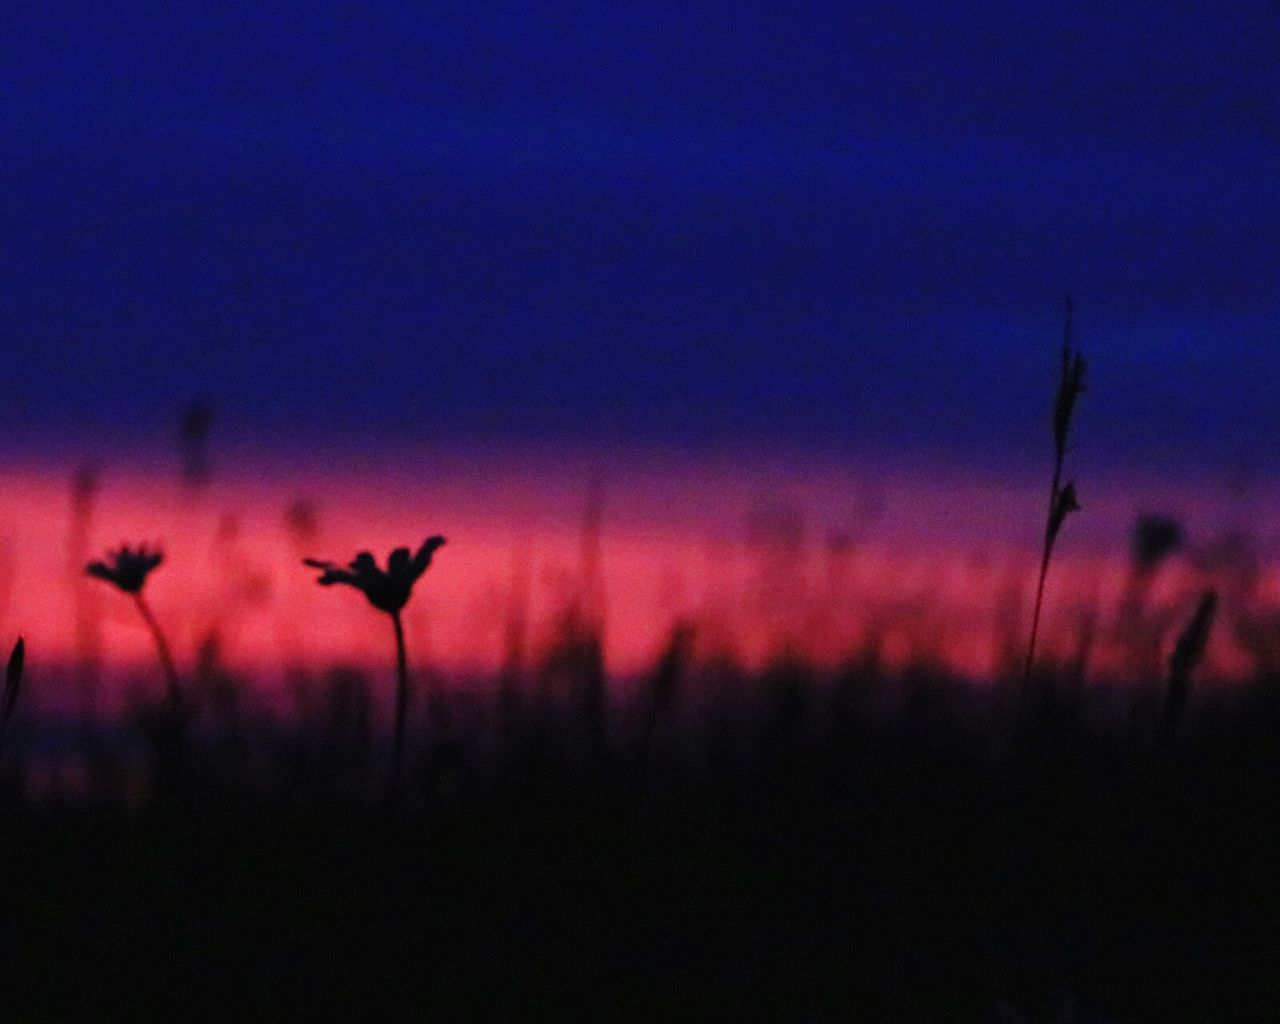 sunset, silhouette, nature, beauty in nature, outdoors, no people, animal themes, growth, scenics, tranquility, plant, animals in the wild, one animal, sky, bird, night, close-up